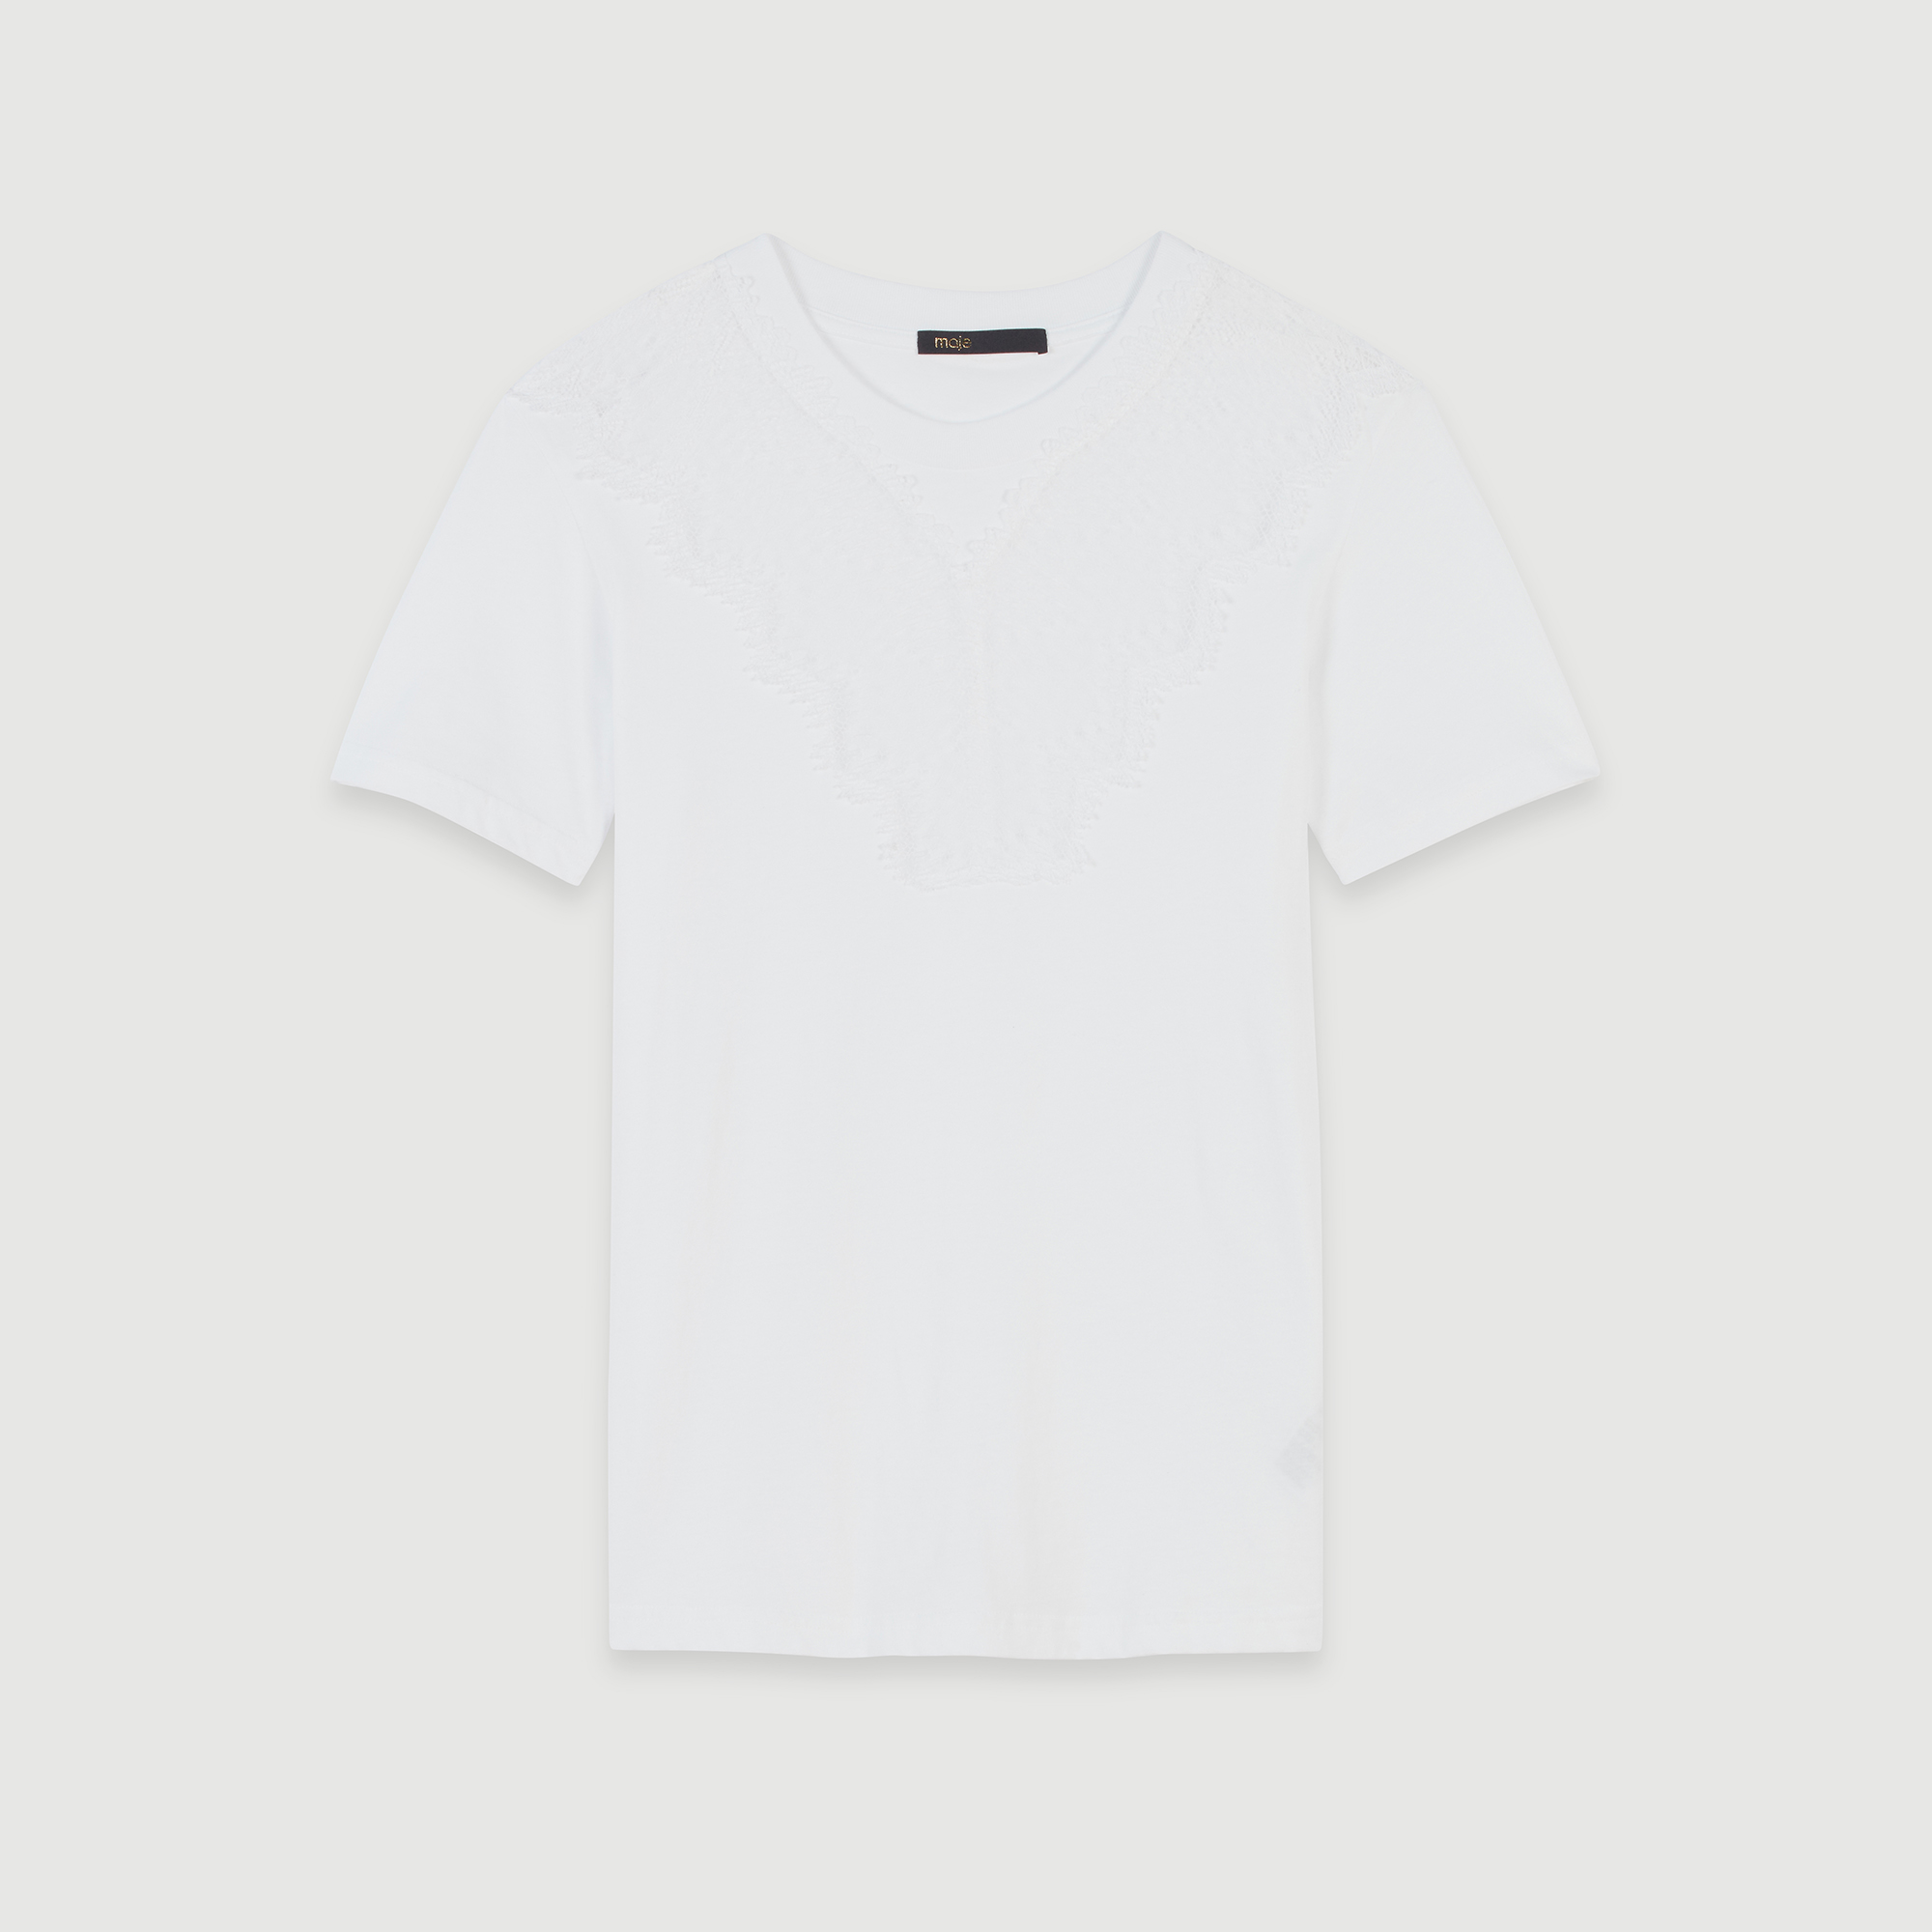 Tee Shirt With Lace Trim - White